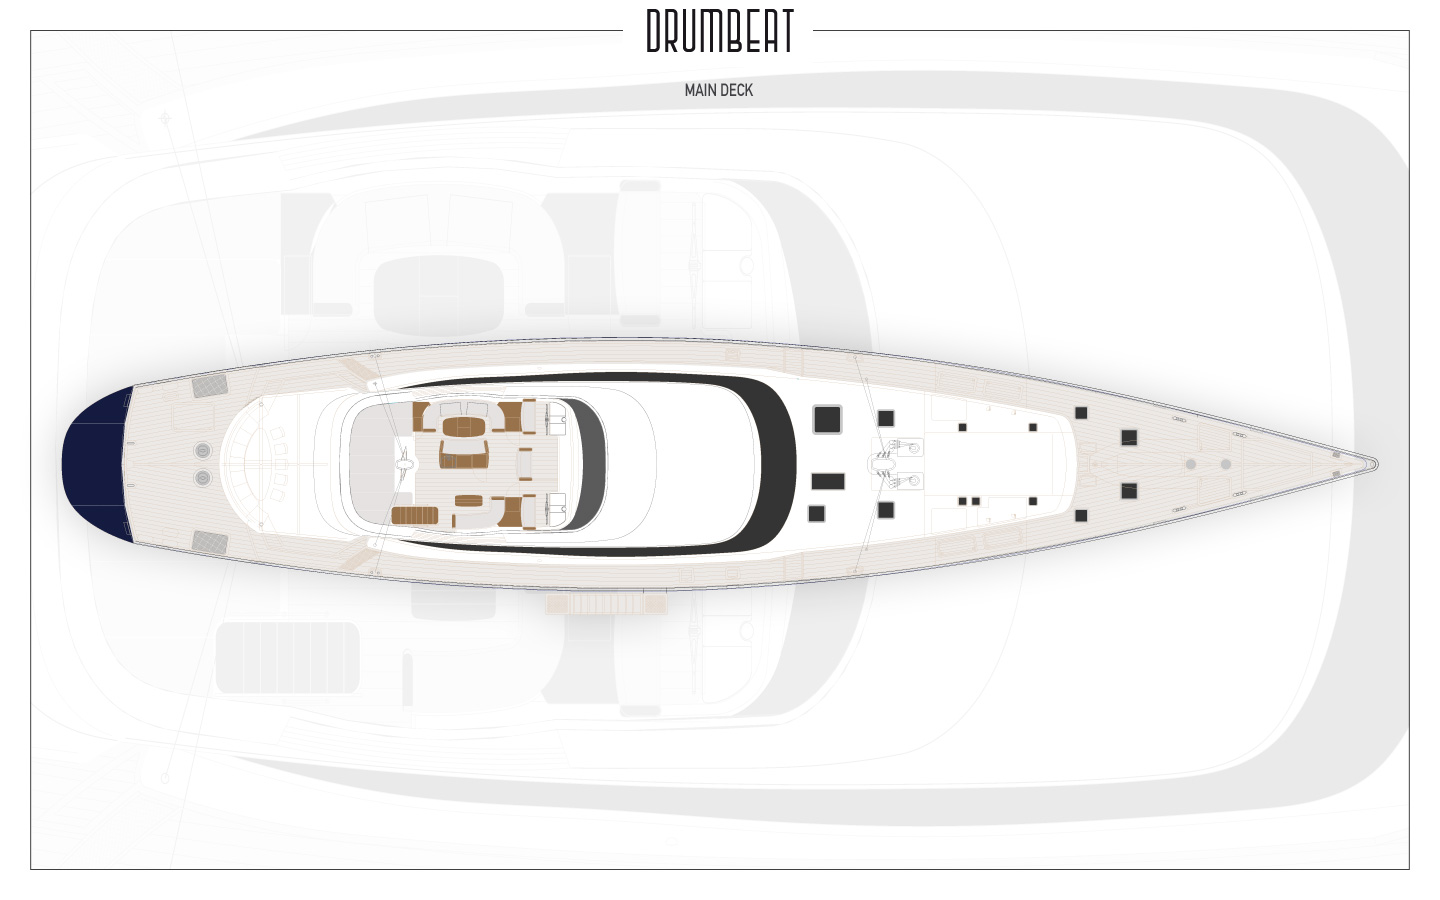 Yacht DRUMBEAT - Alloy Yachts - Plans 2